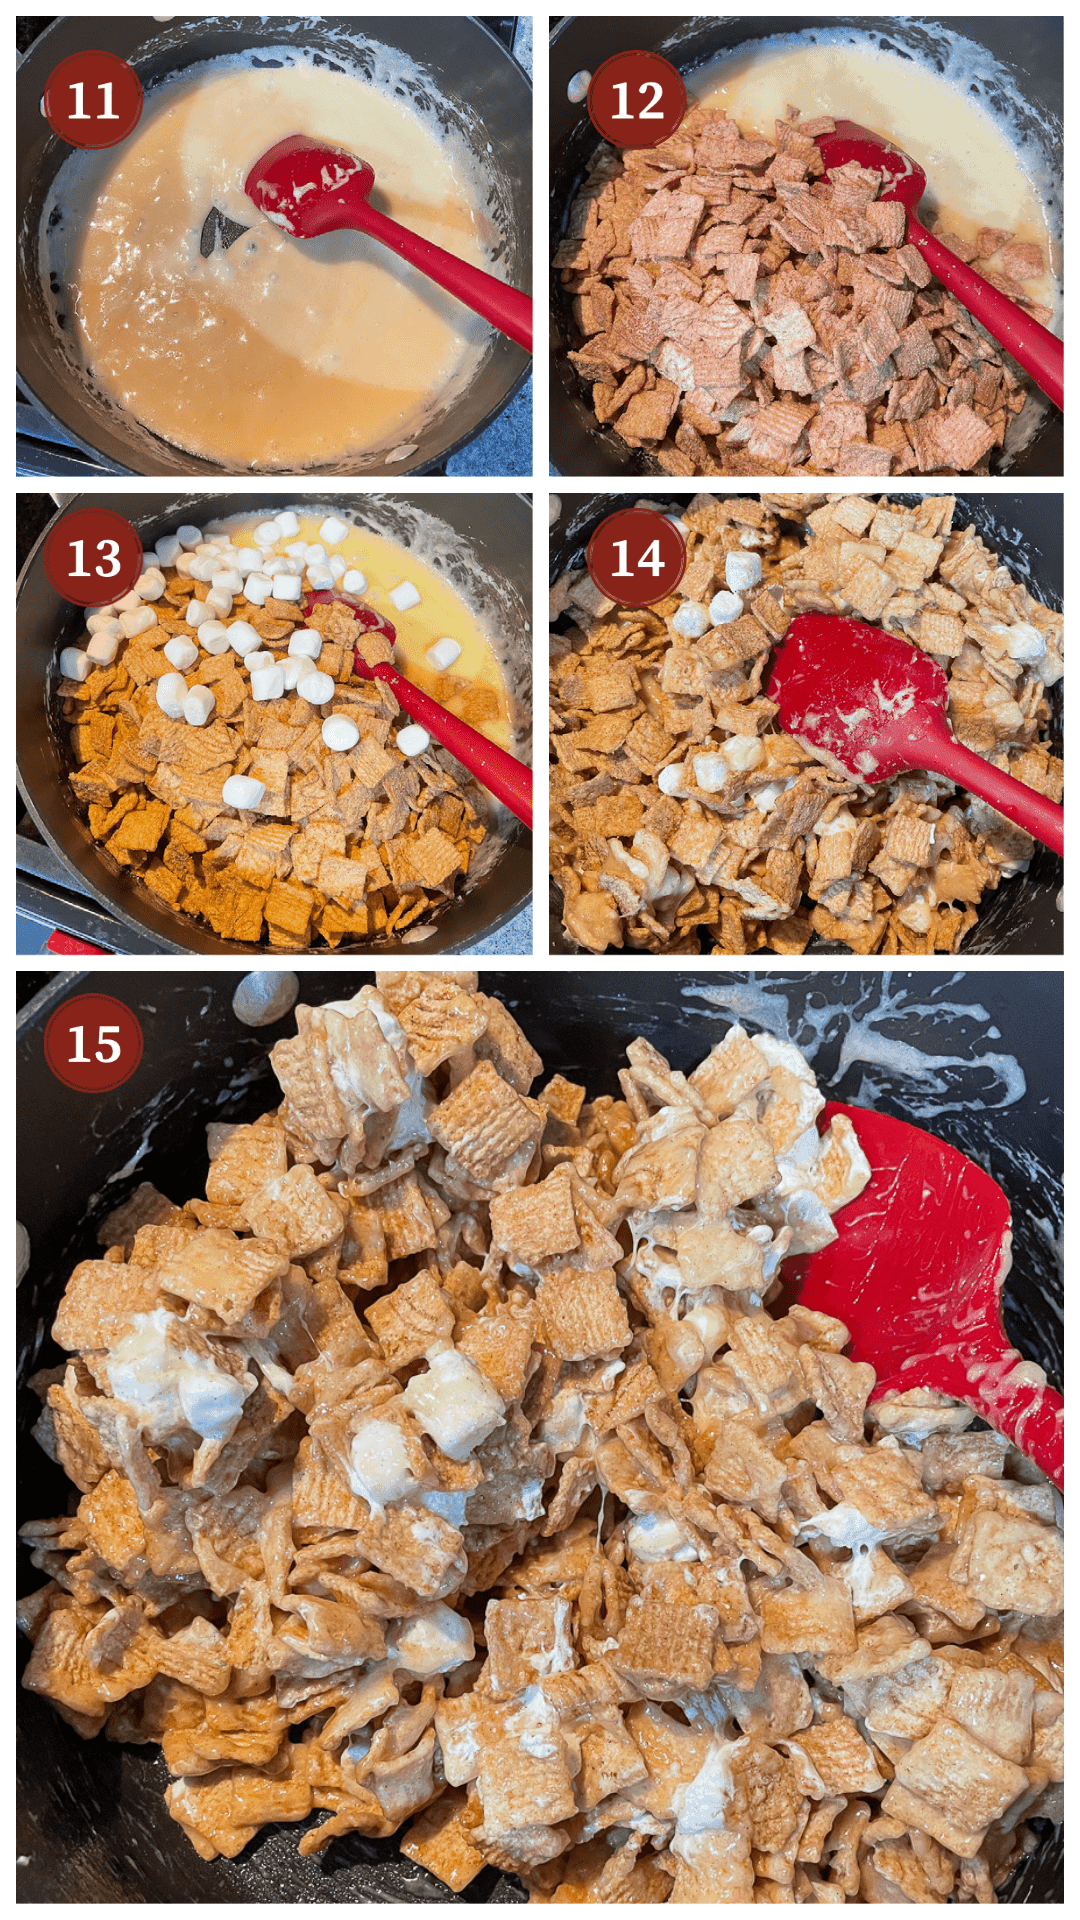 A collage of images showing how to make cinnamon toast crunch cereal treats, steps 11 - 15.